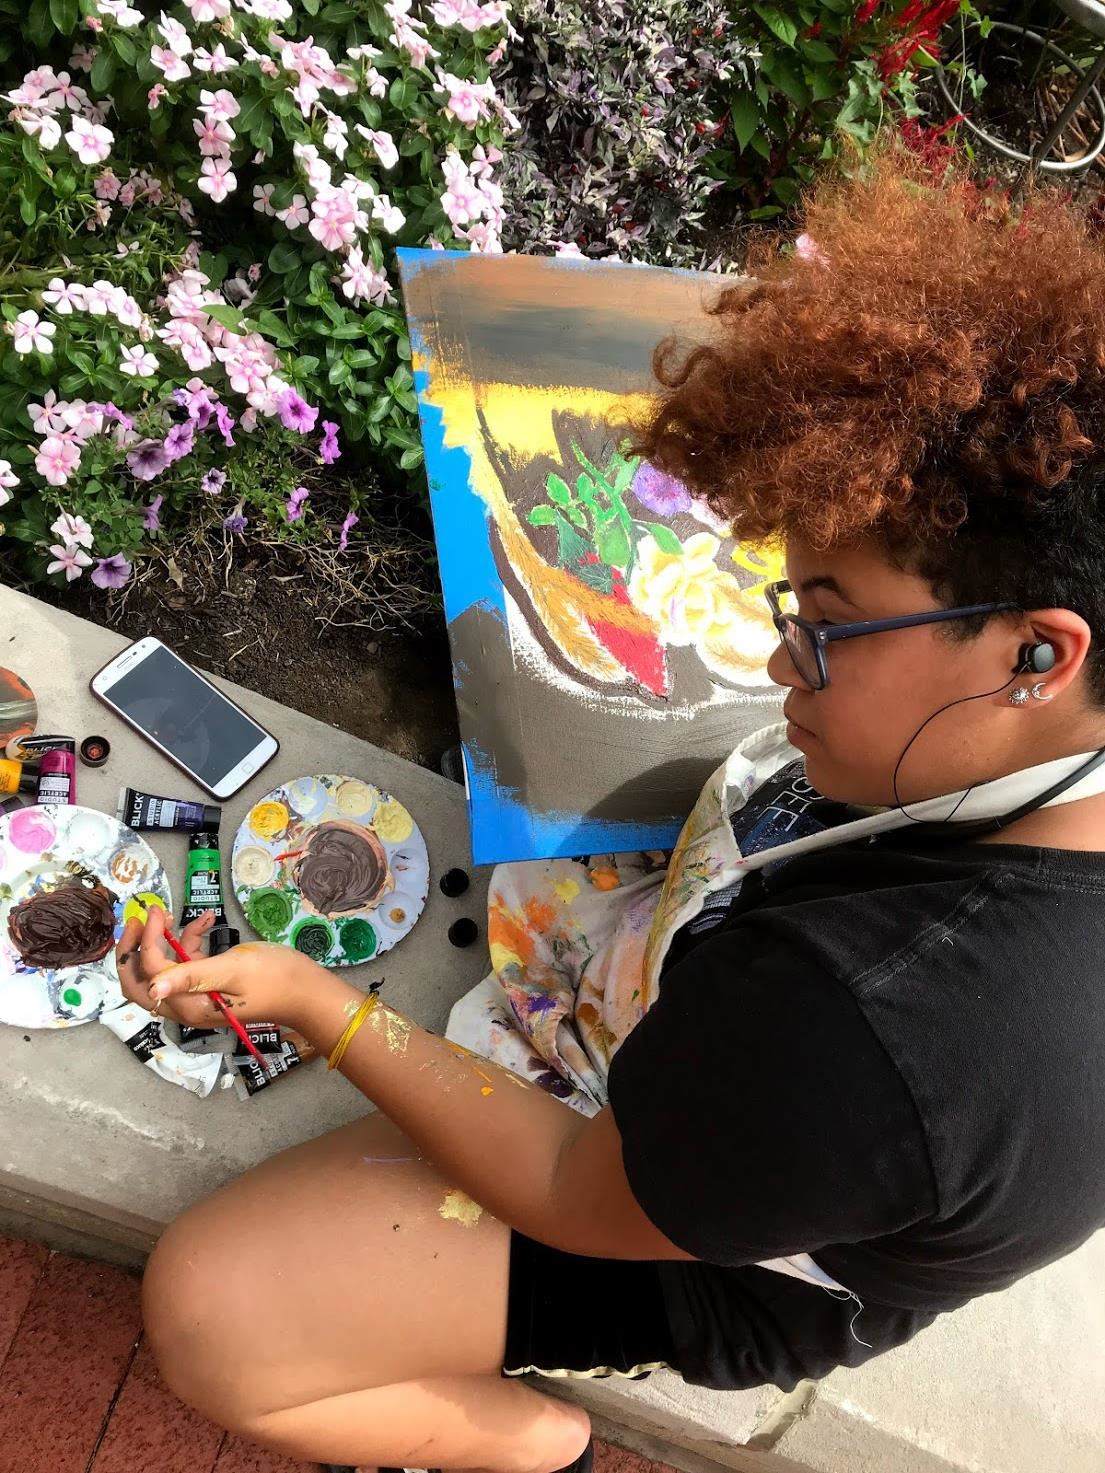 PleinAir 2019 student artist painting in garden